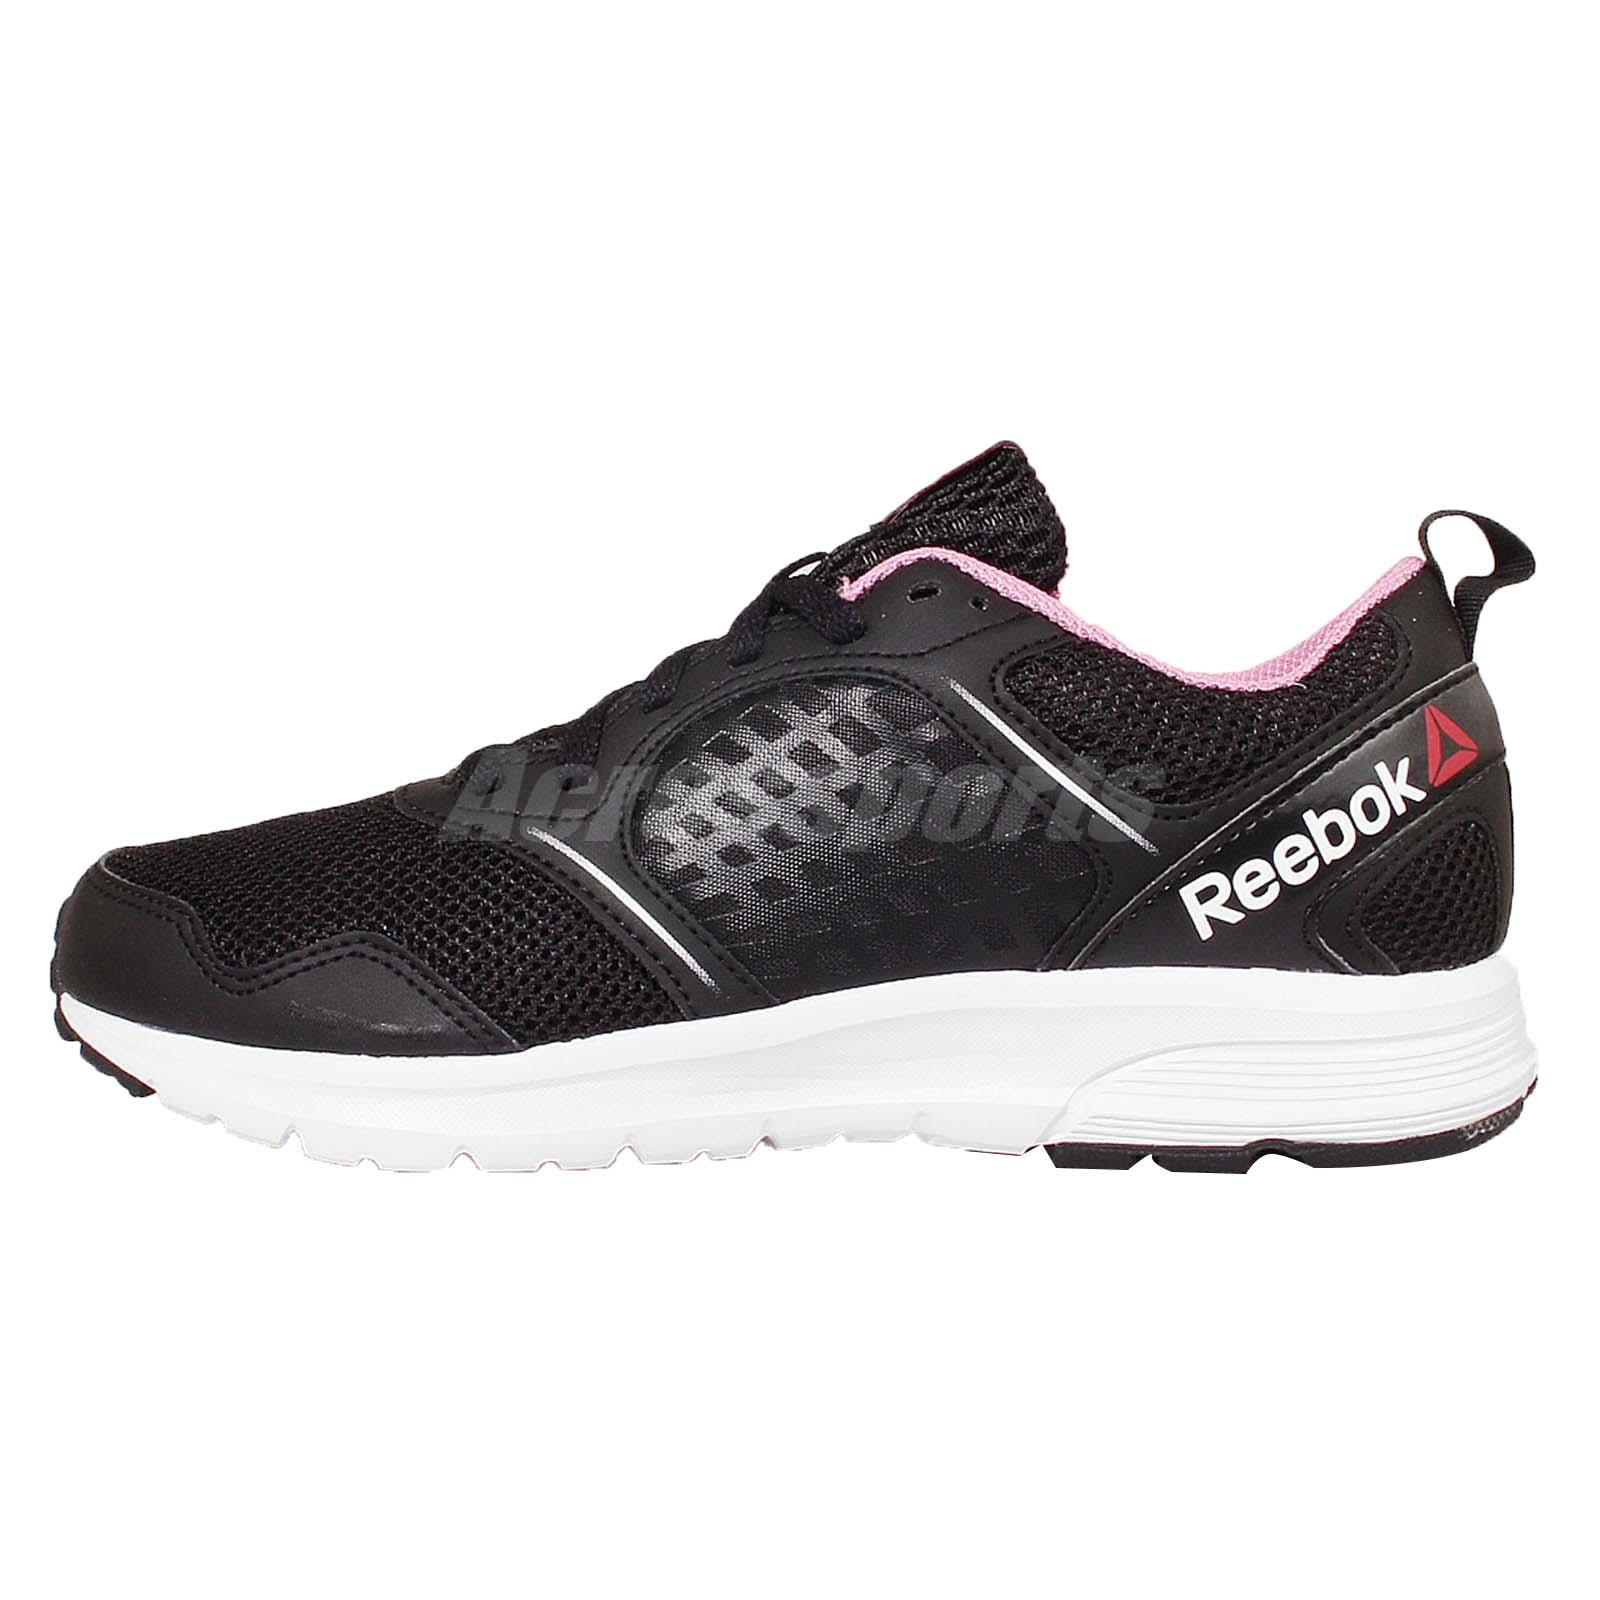 reebok womens running shoes. reebok rush black pink womens running shoes v68017